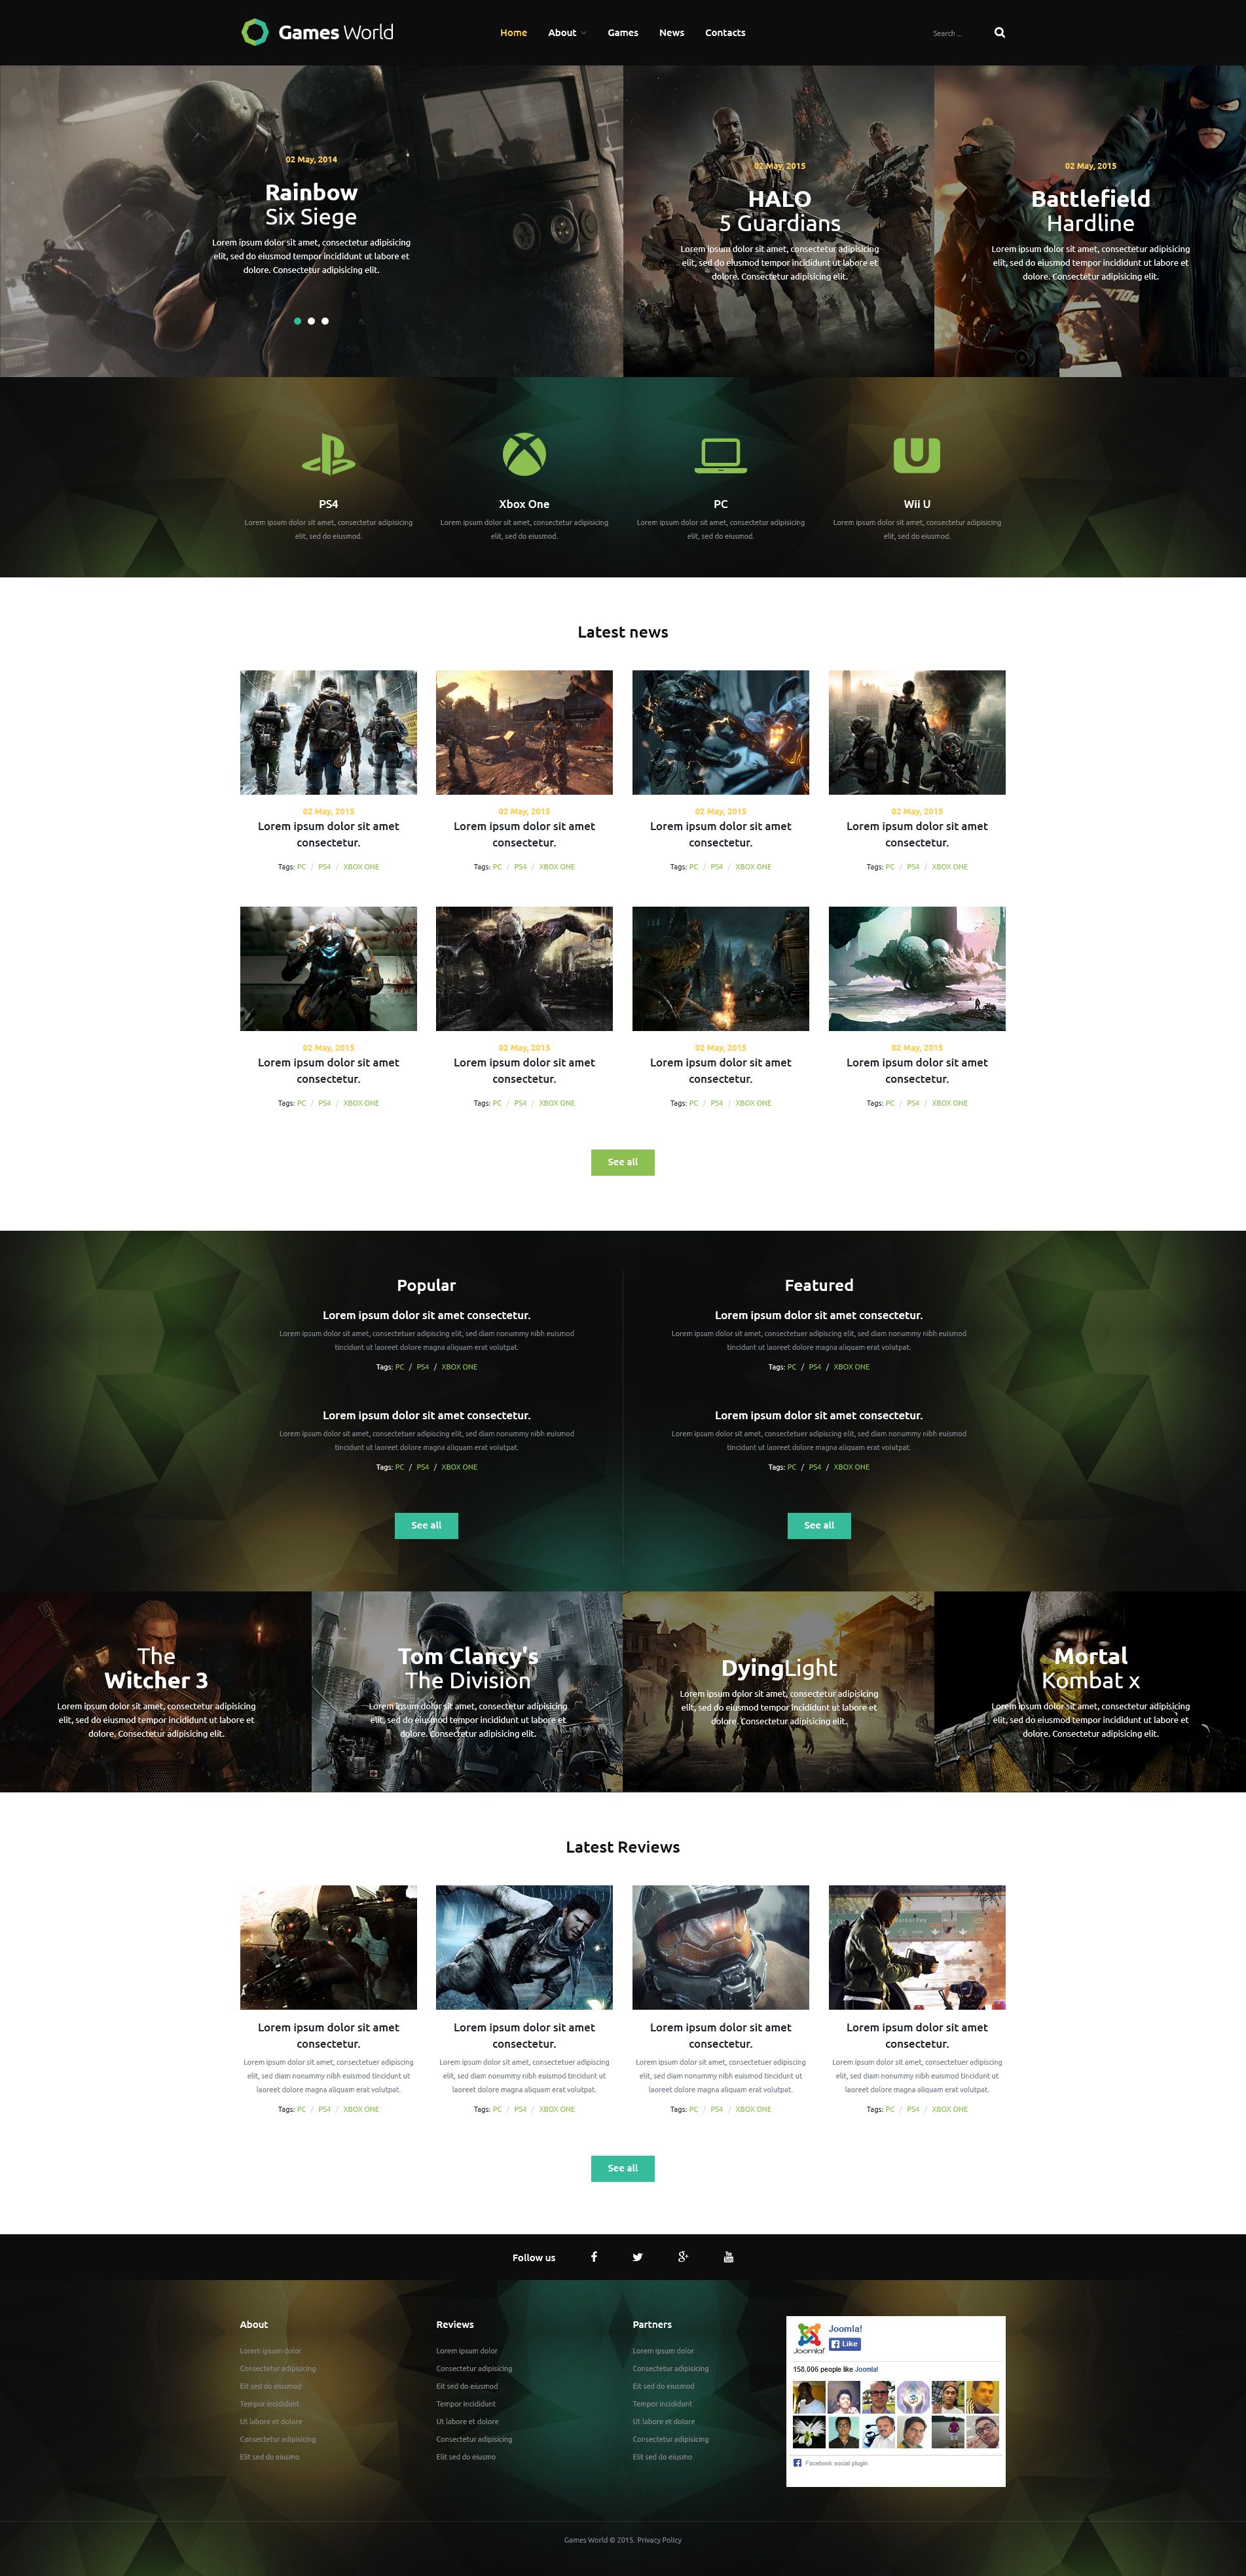 The Games Portal Joomla Design 53859, one of the best Joomla templates of its kind (games, most popular), also known as games portal Joomla template, clan Joomla template, online actions Joomla template, adventures Joomla template, driving Joomla template, strategy Joomla template, community Joomla template, members Joomla template, rules Joomla template, strategy Joomla template, stats Joomla template, gamers Joomla template, play Joomla template, champion Joomla template, tactics Joomla template, behavior Joomla template, equipment Joomla template, entertainment club Joomla template, gamer Joomla template, computer Joomla template, tournament Joomla template, pc Joomla template, action Joomla template, rpg Joomla template, 3D graphics Joomla template, counter-strike Joomla template, webmaster and related with games portal, clan, online actions, adventures, driving, strategy, community, members, rules, strategy, stats, gamers, play, champion, tactics, behavior, equipment, entertainment club, gamer, computer, tournament, pc, action, rpg, 3D graphics, counter-strike, webmaster, etc.